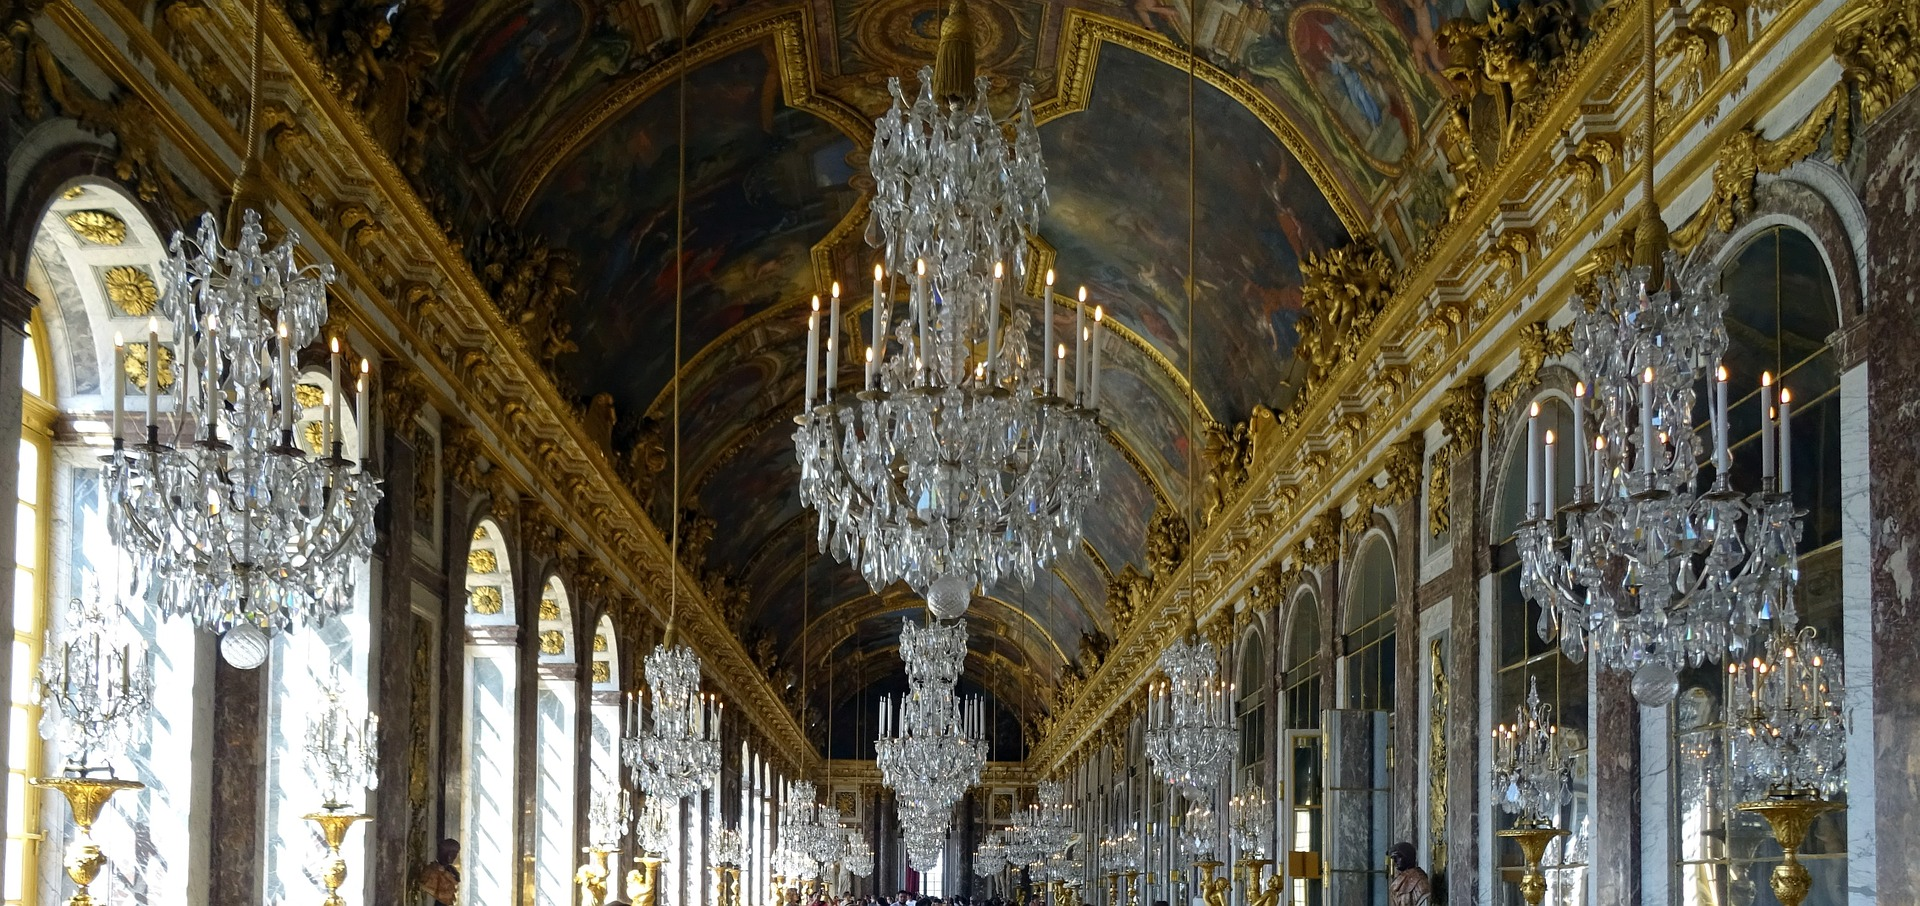 Versailles Palace Hall of Mirrors, Versailles, France